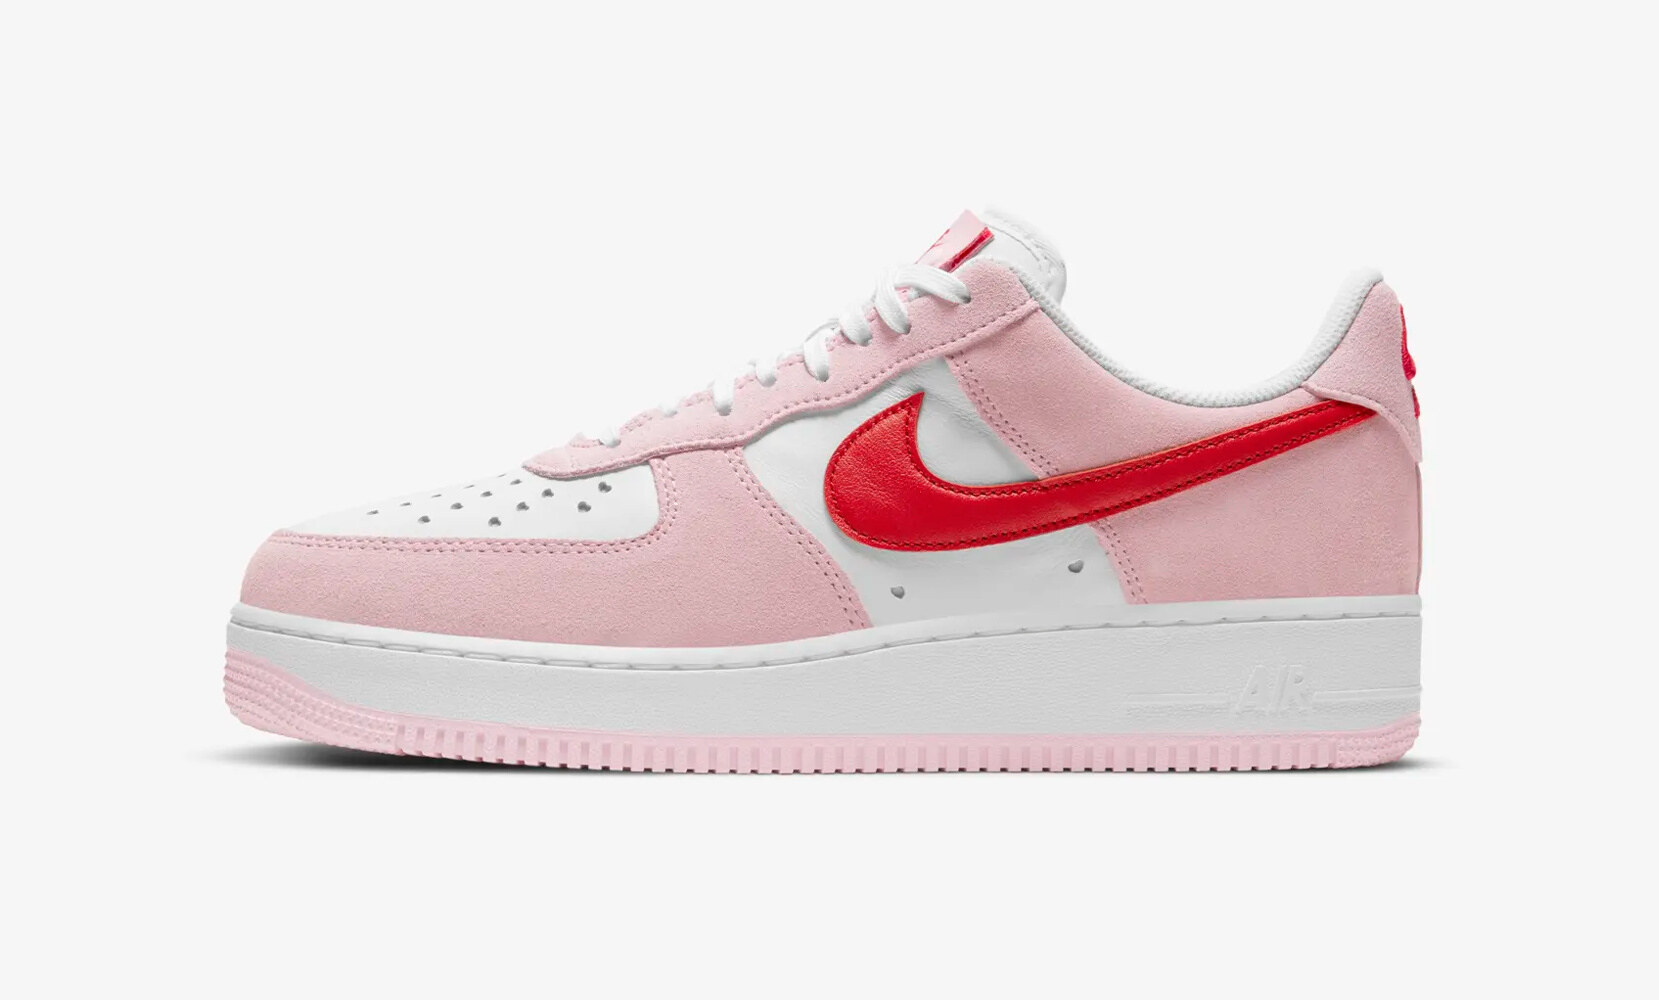 Nike Air Force 1 '07 Valentine's Day